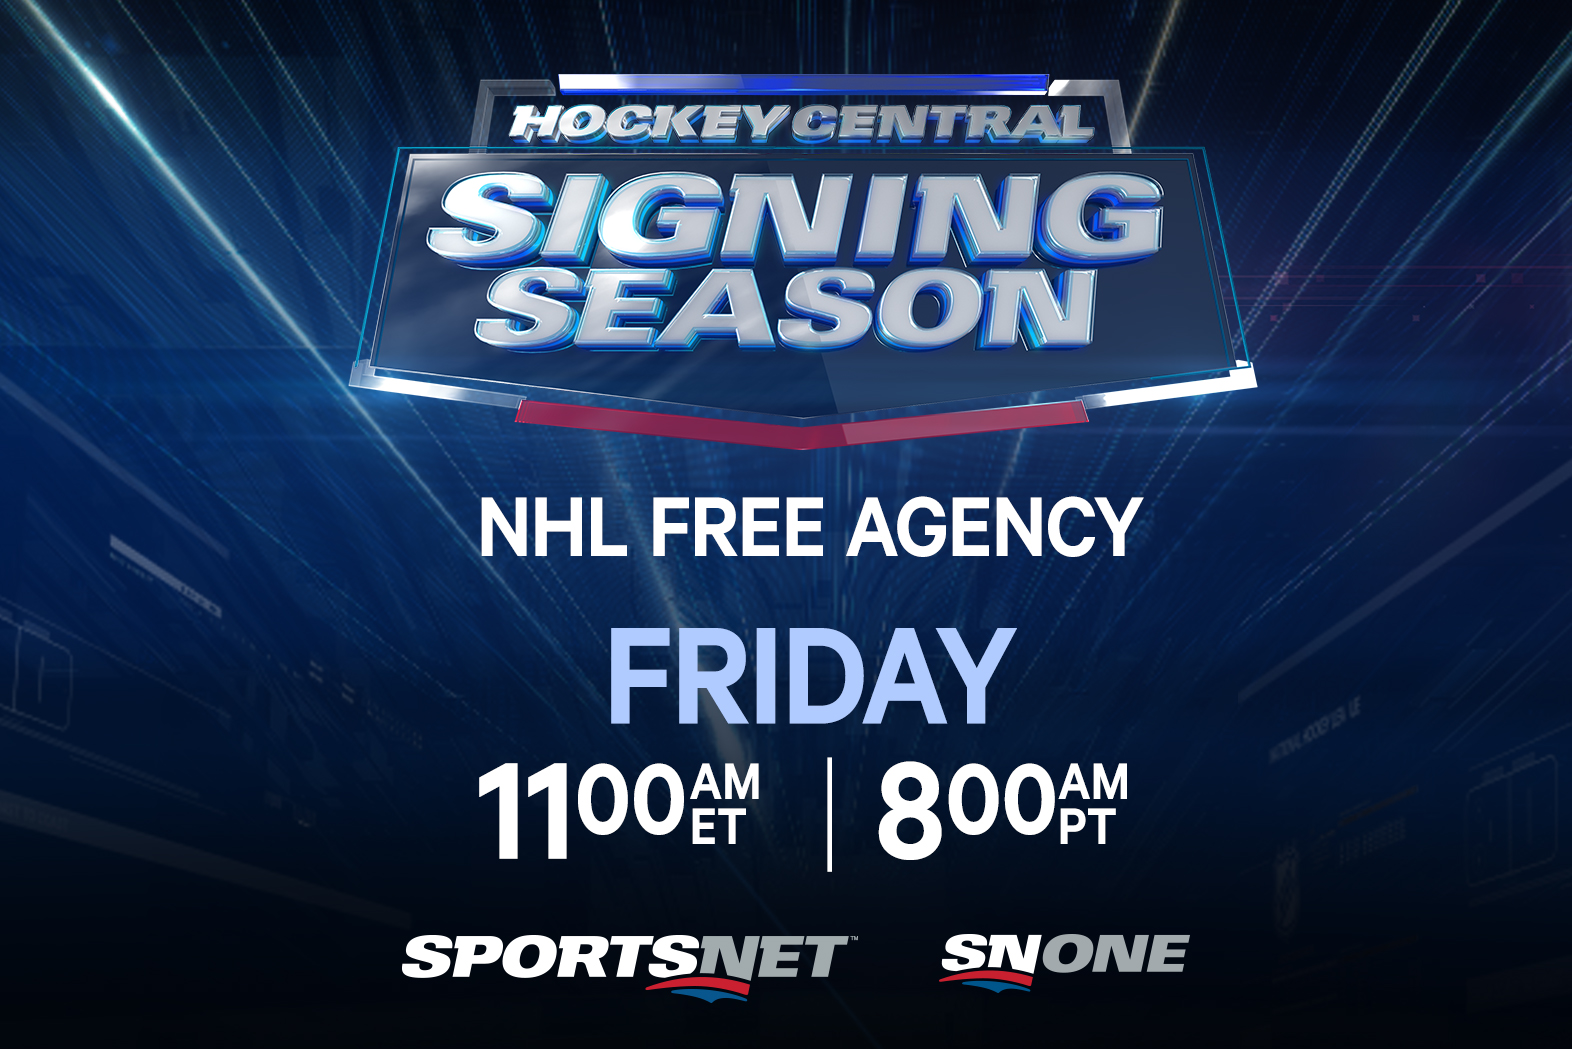 NHL-SIGNINGS-SEASON-FACEBOOK-POST-FRI